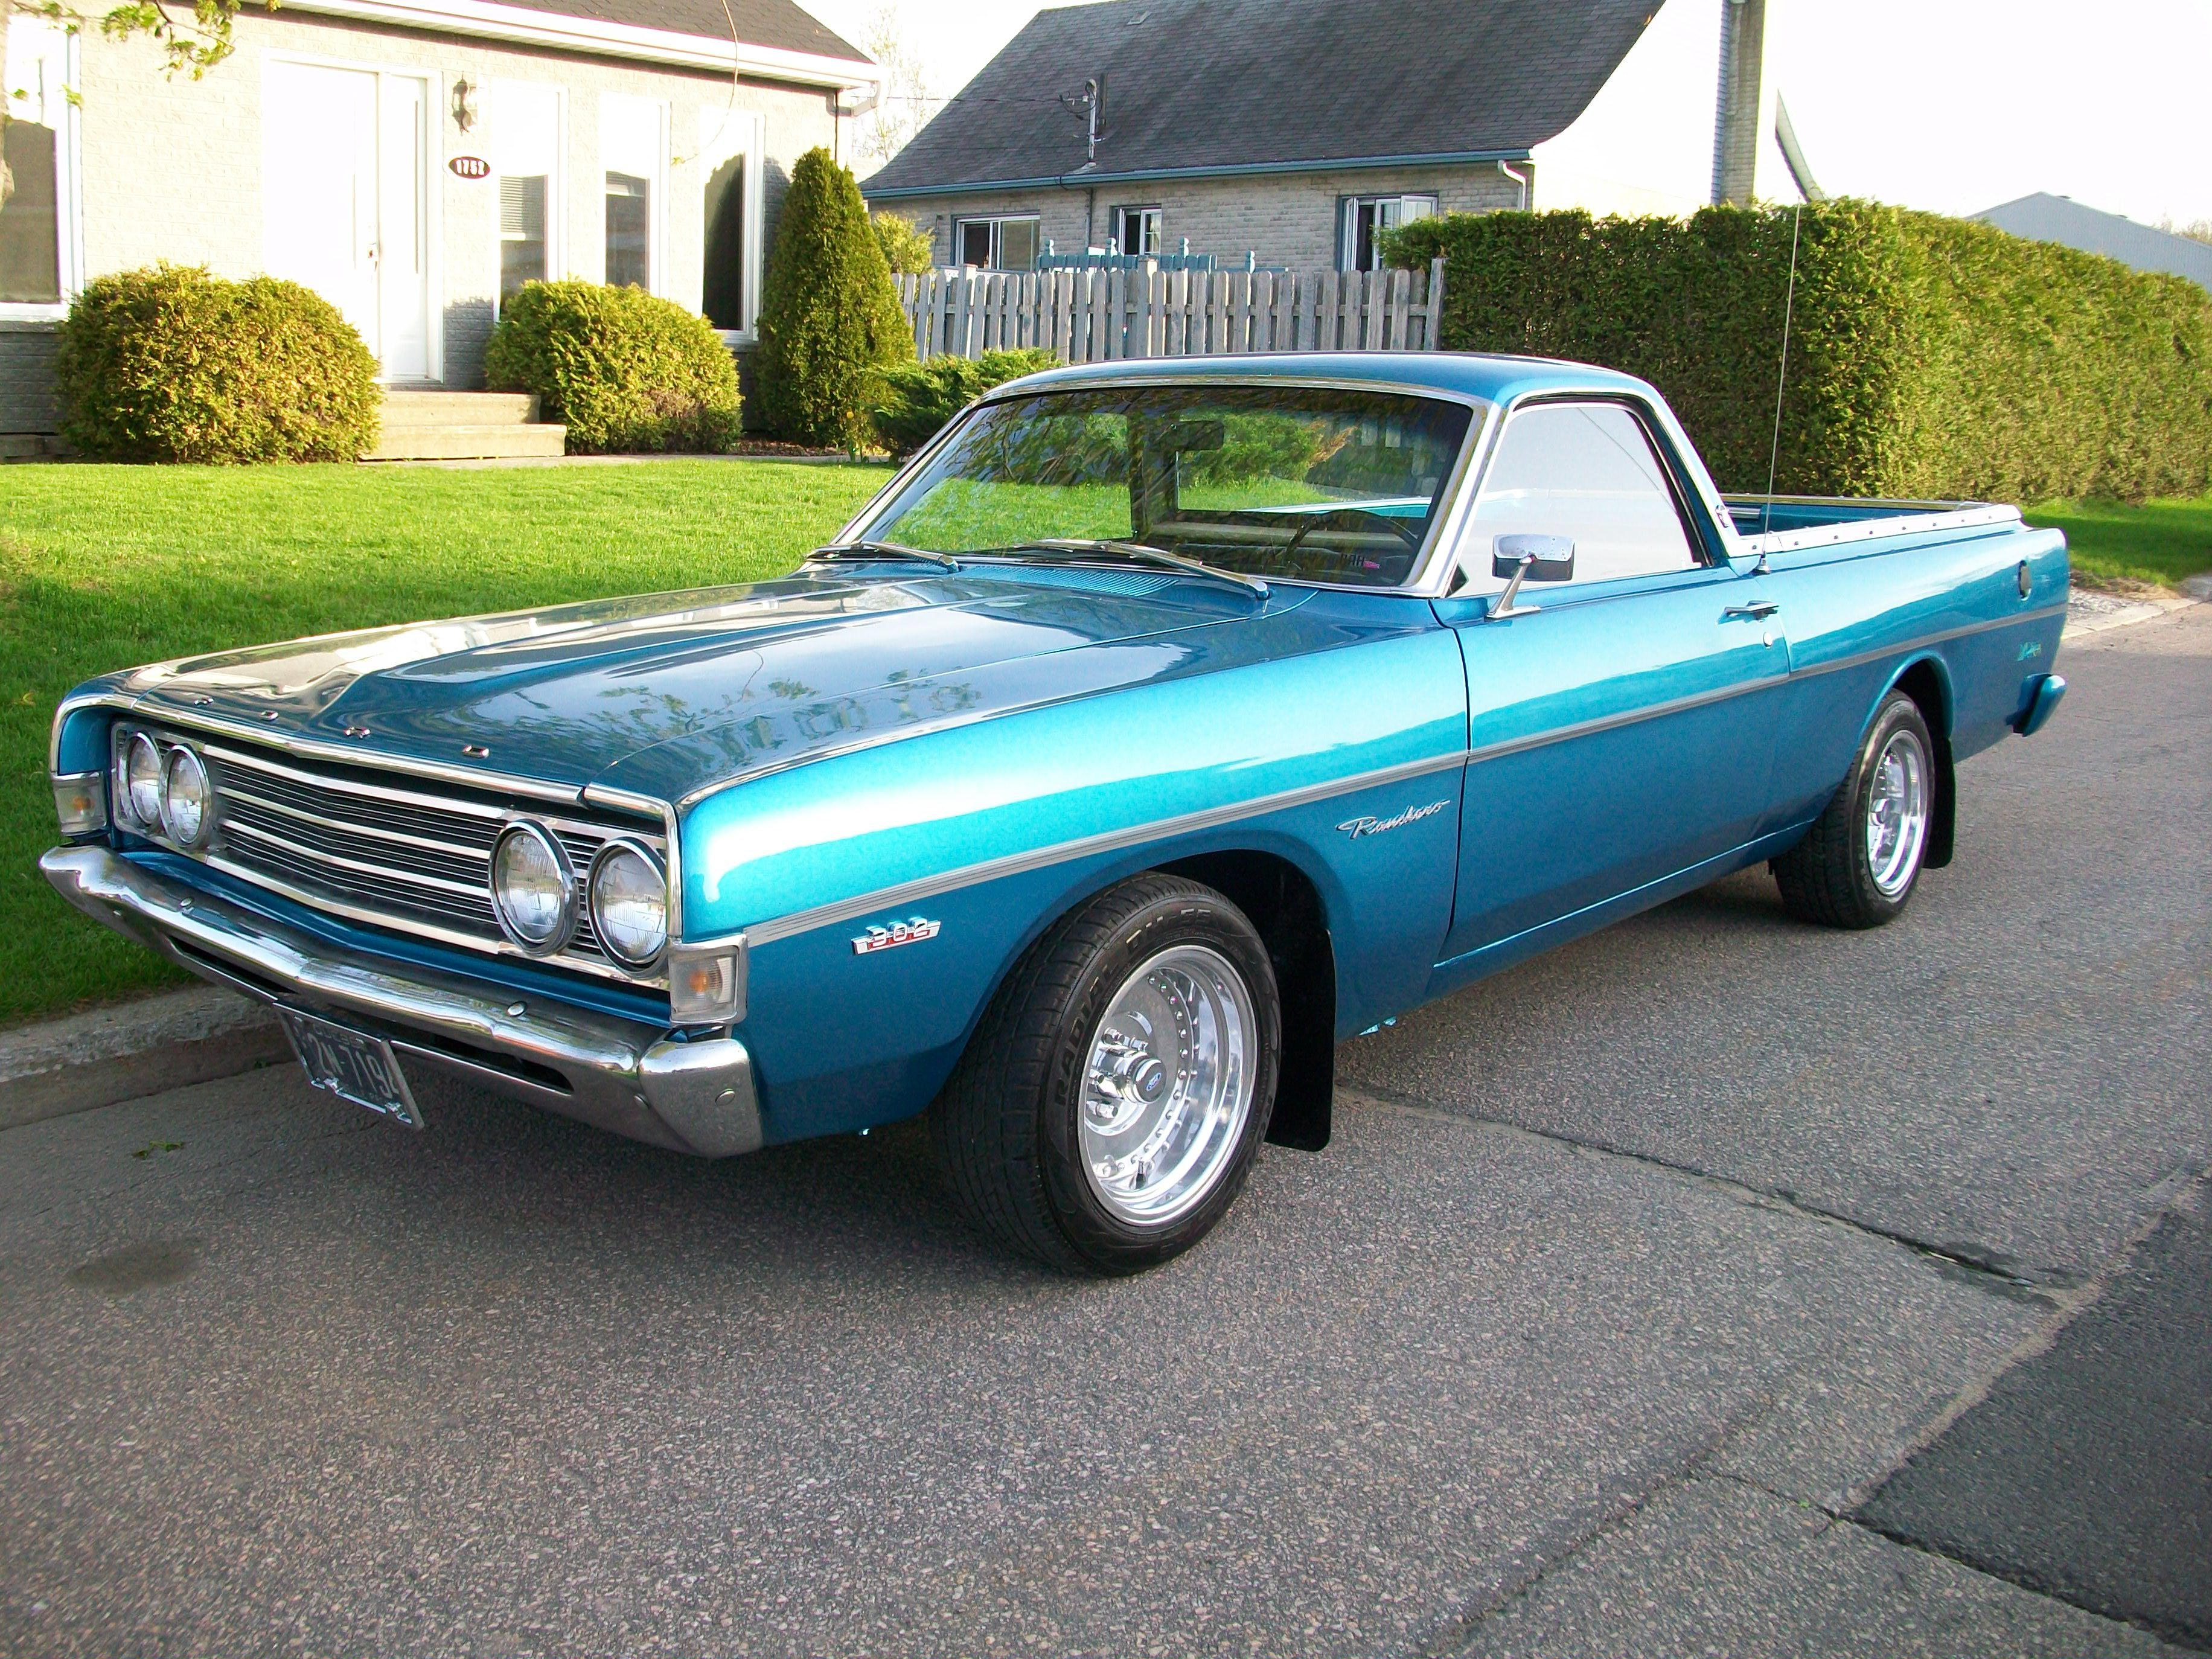 Ford Ranchero Classic Cars Pinterest Ford And Cars